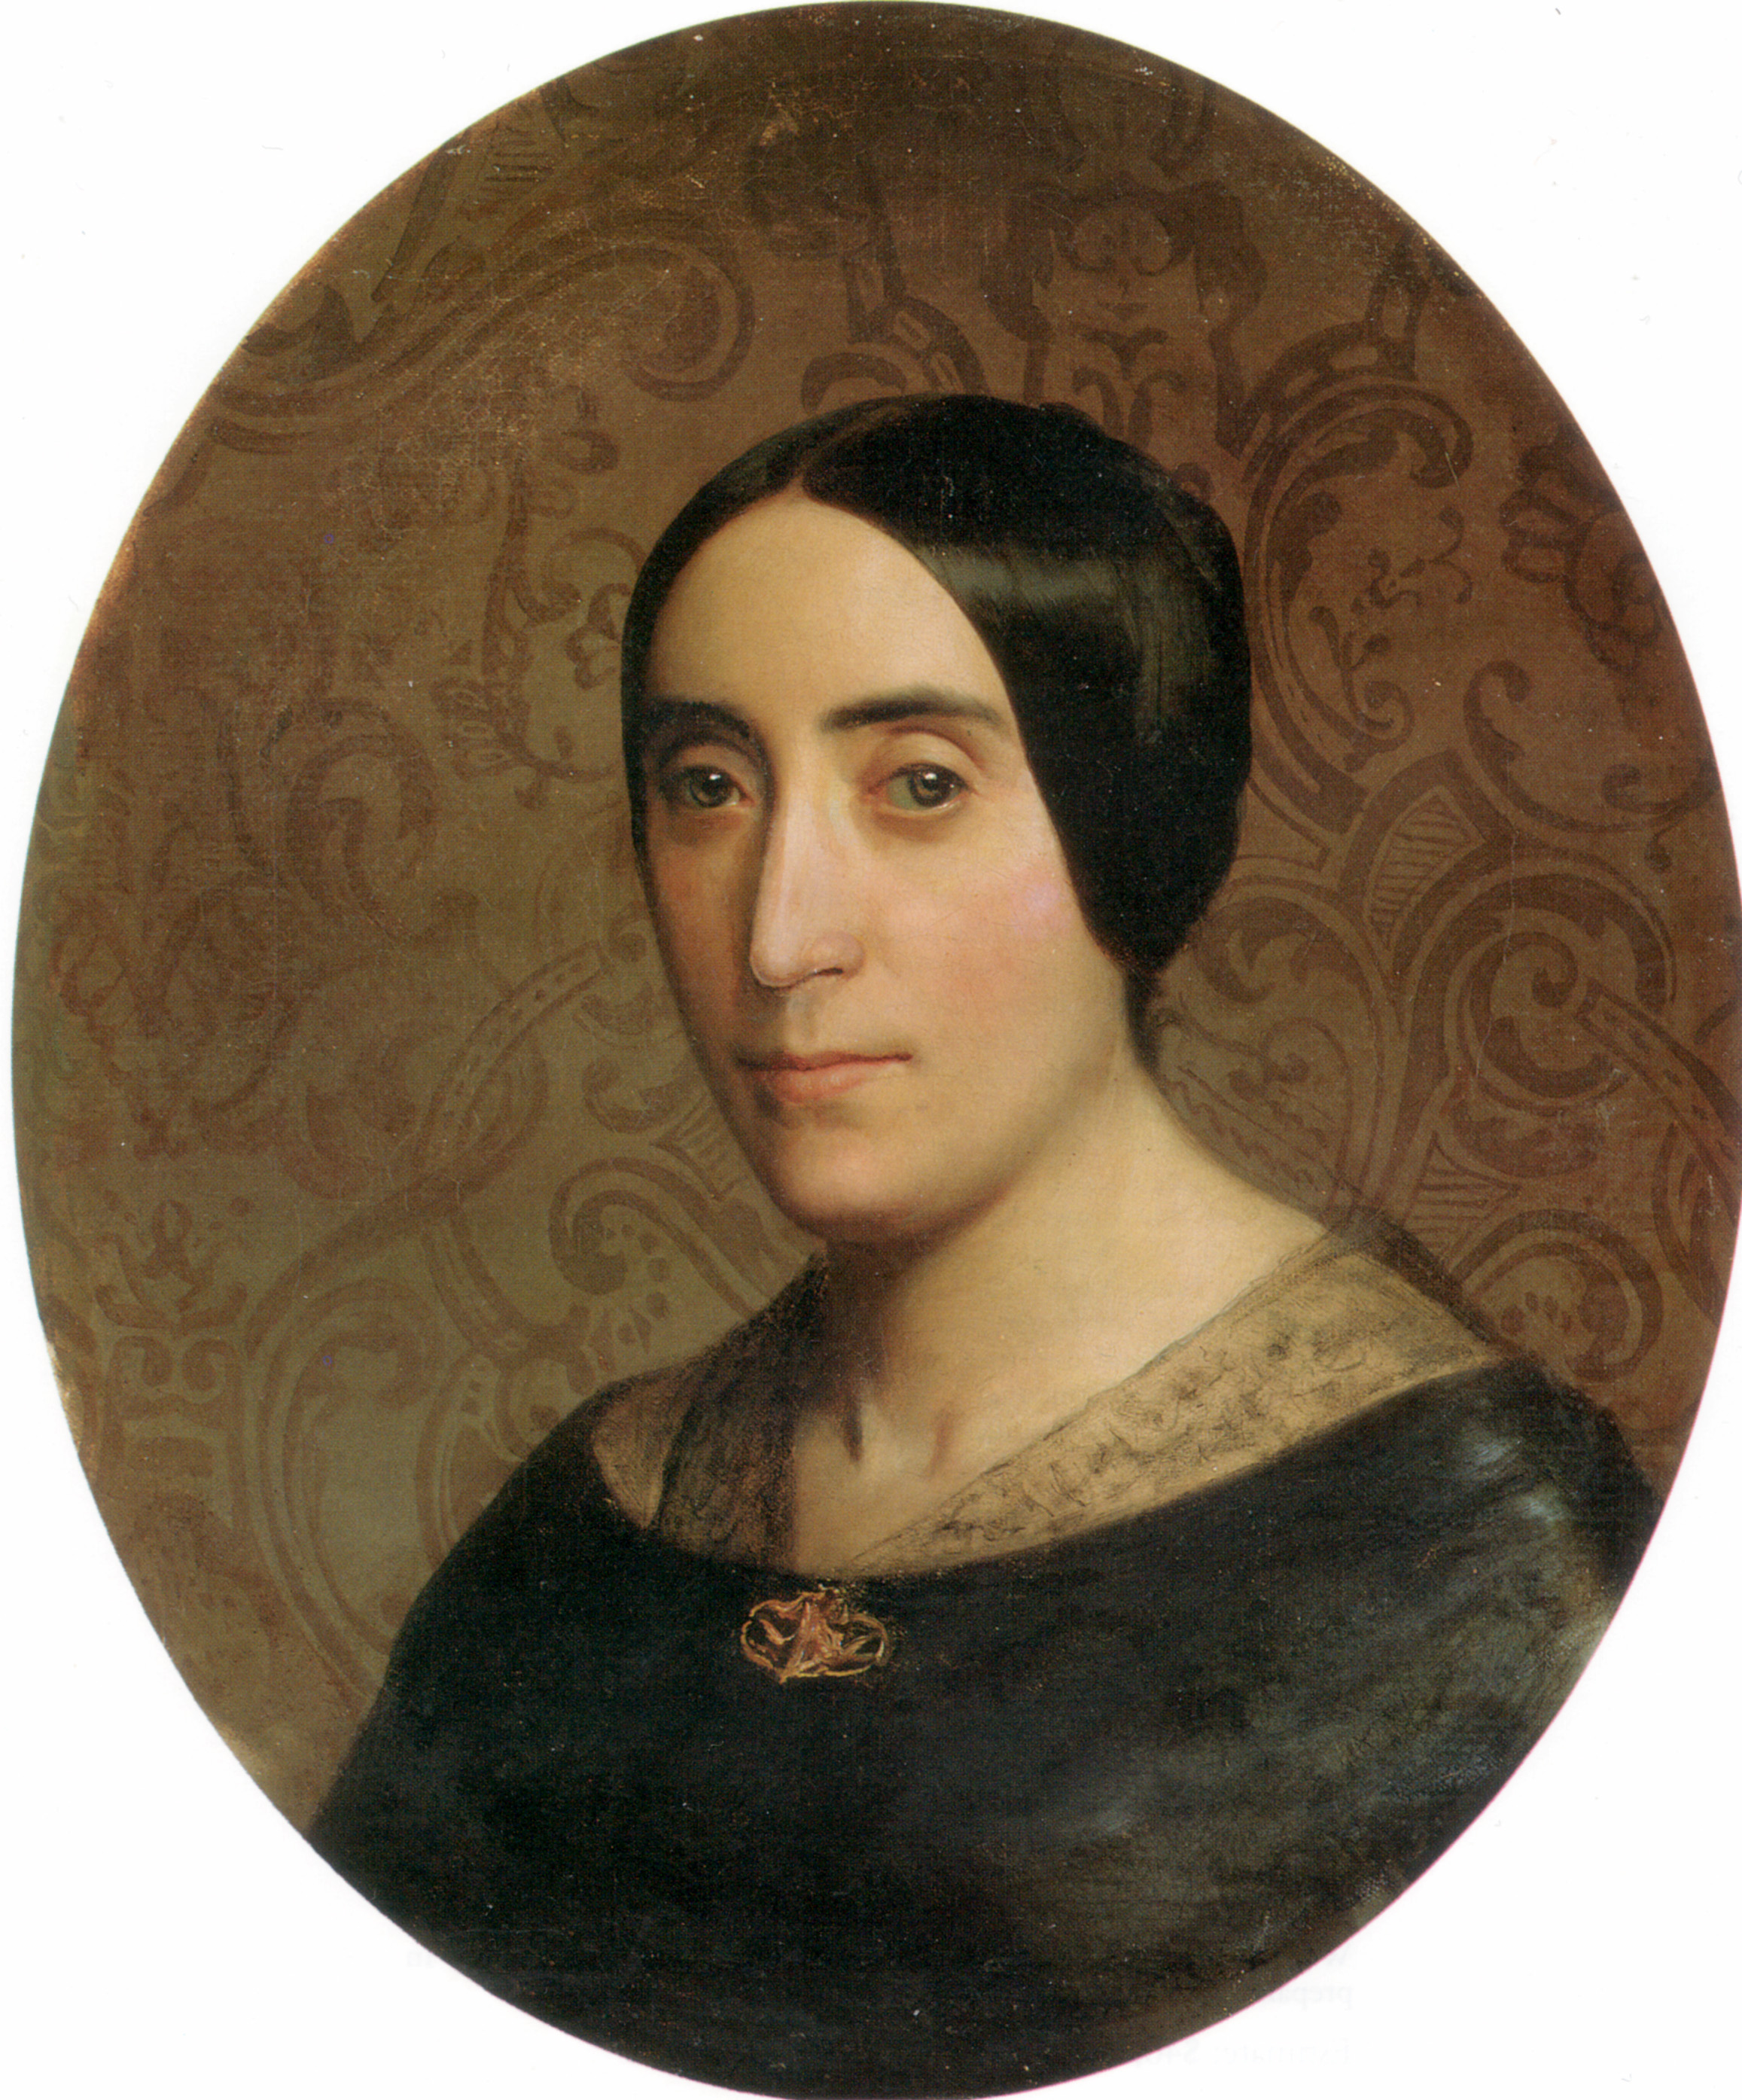 A Portrait of Amelina Dufaud, 1850